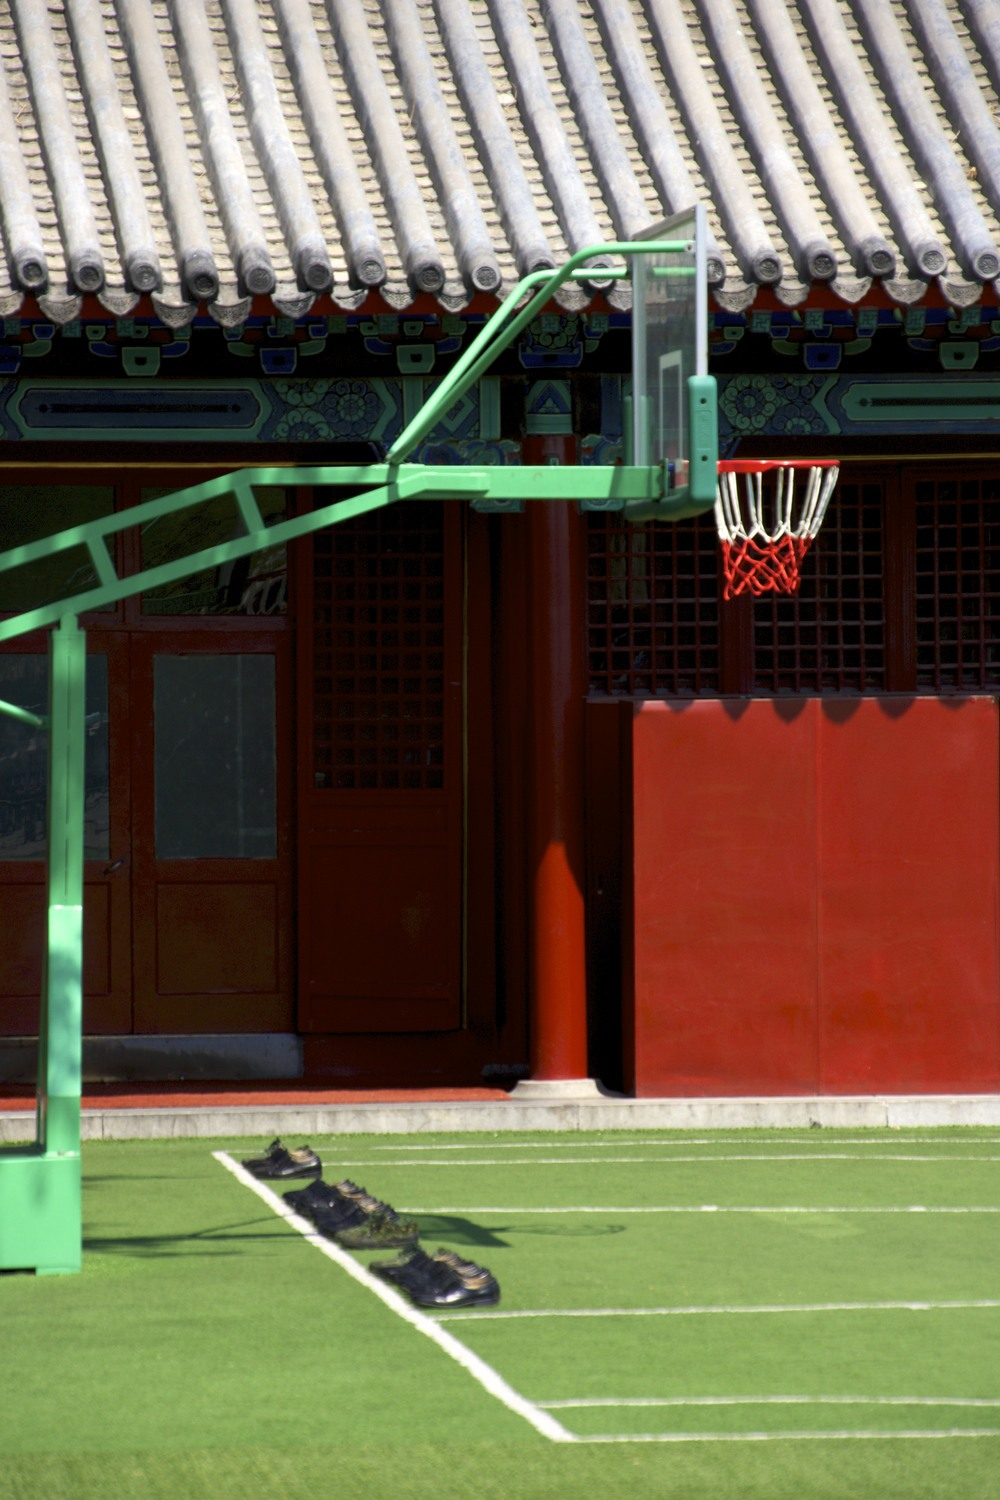 army basketball court in Beijing